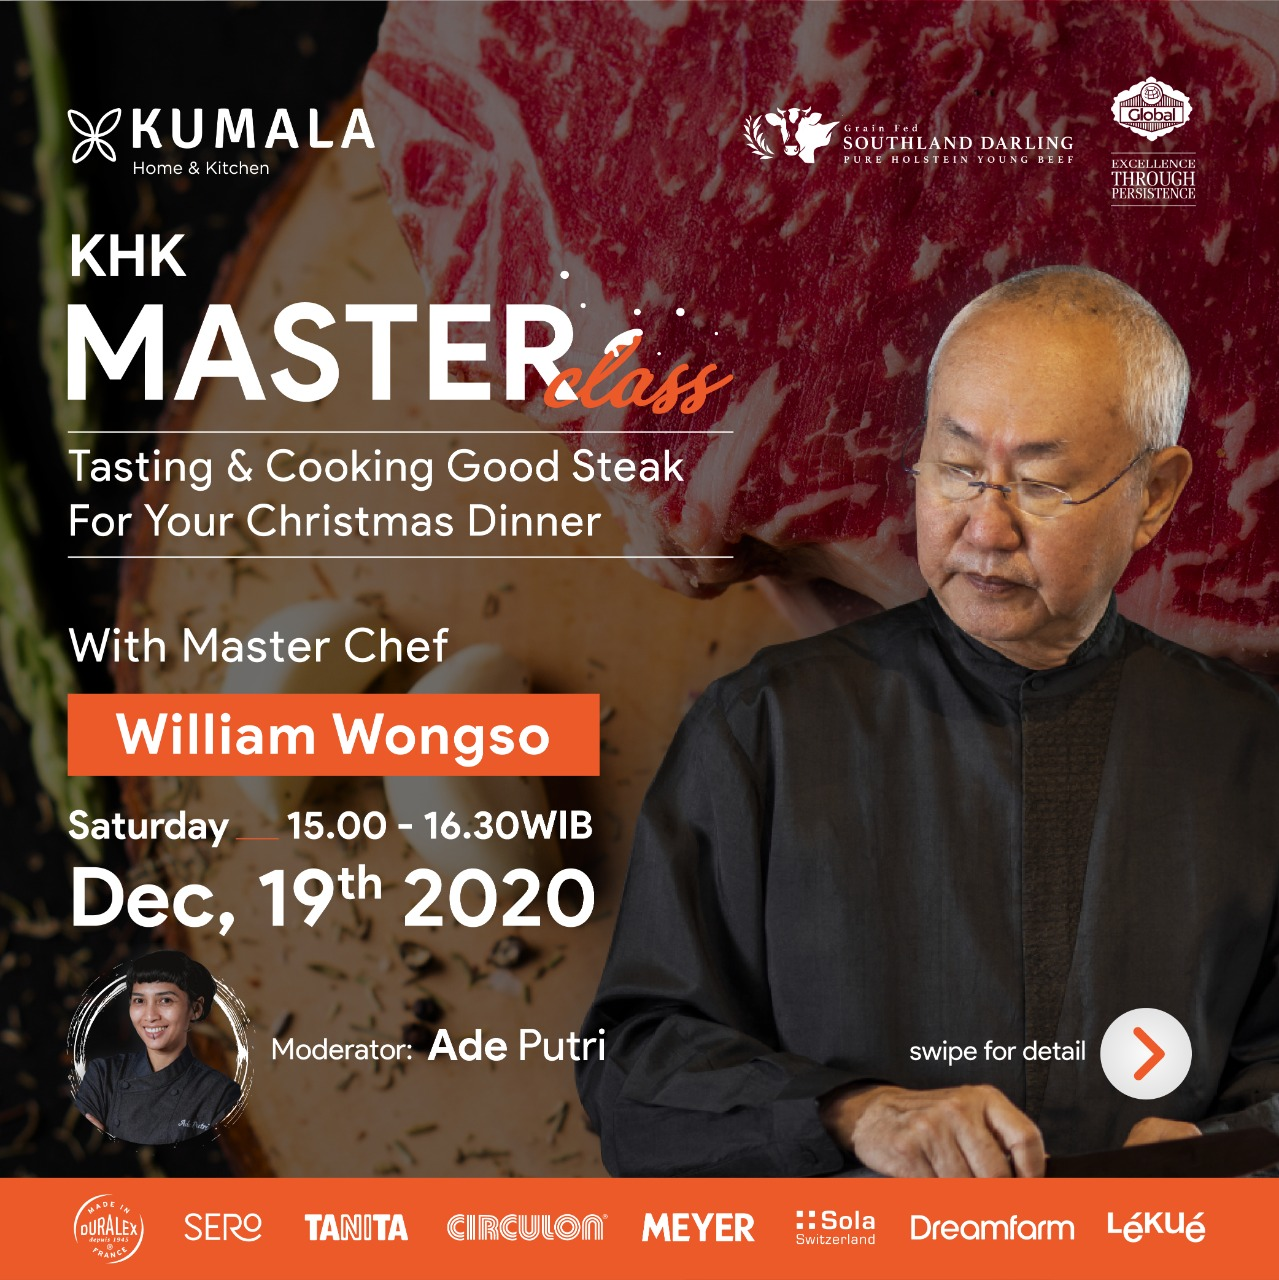 CHRISTMAS COOKING WITH MASTER CHEF WILLIAM WONGSO